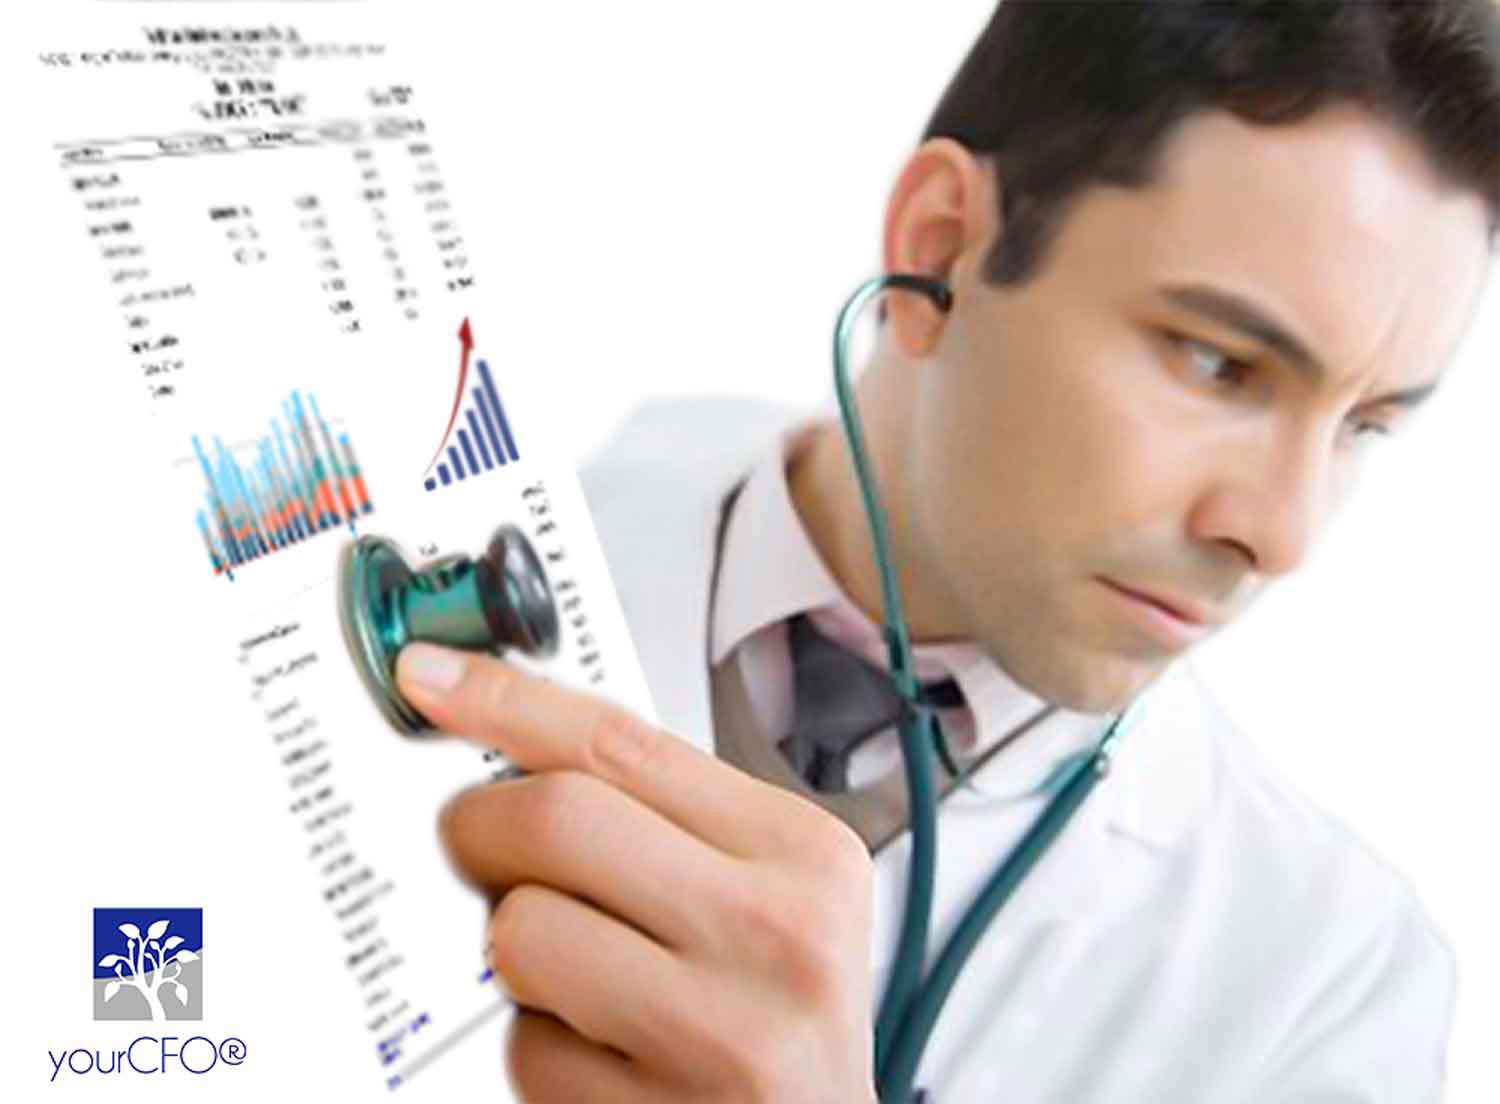 A doctor CFO auscultating financial reports